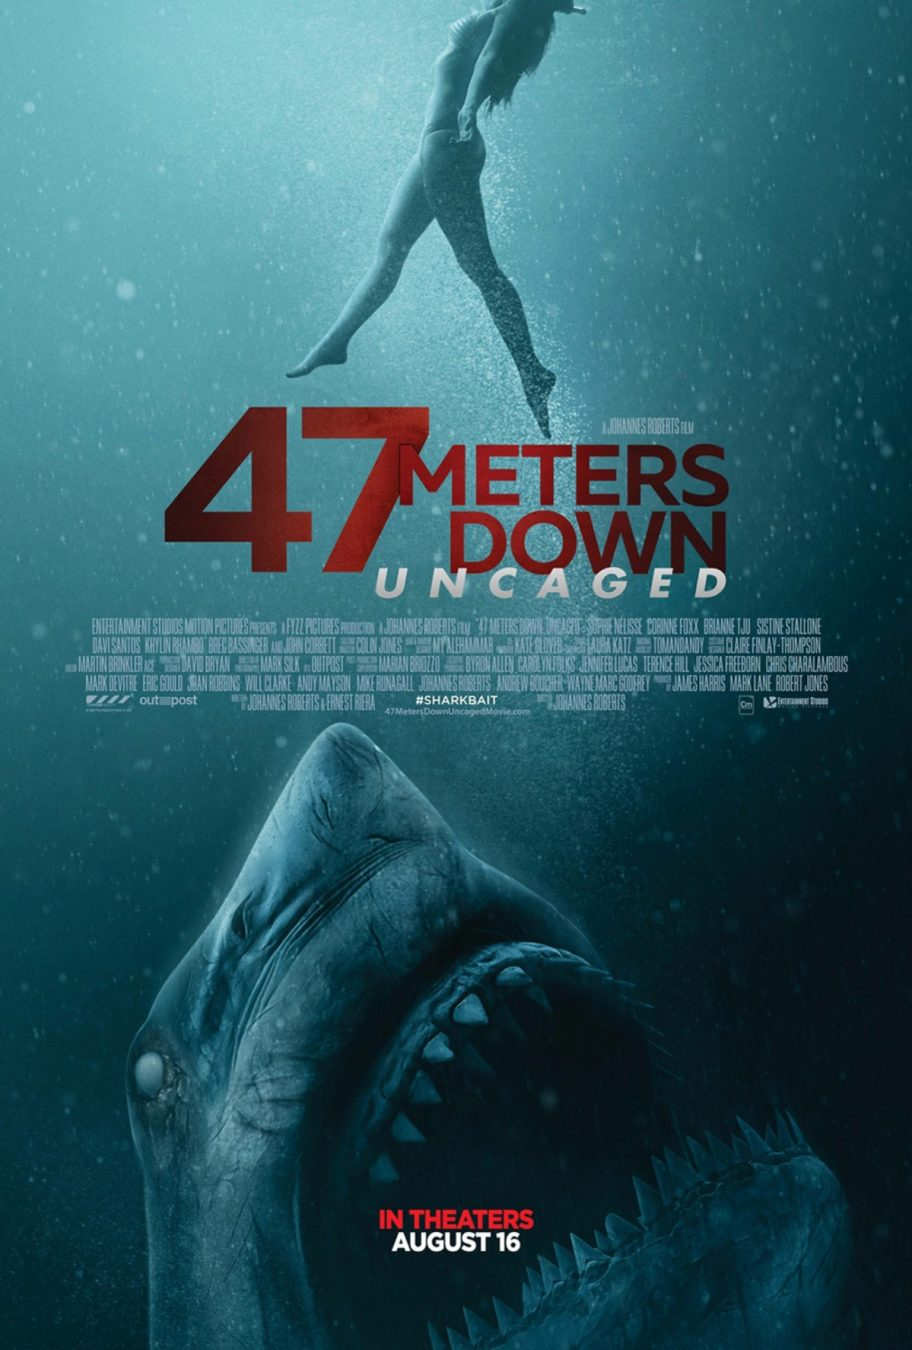 47-meters-down-uncaged-poster 2019